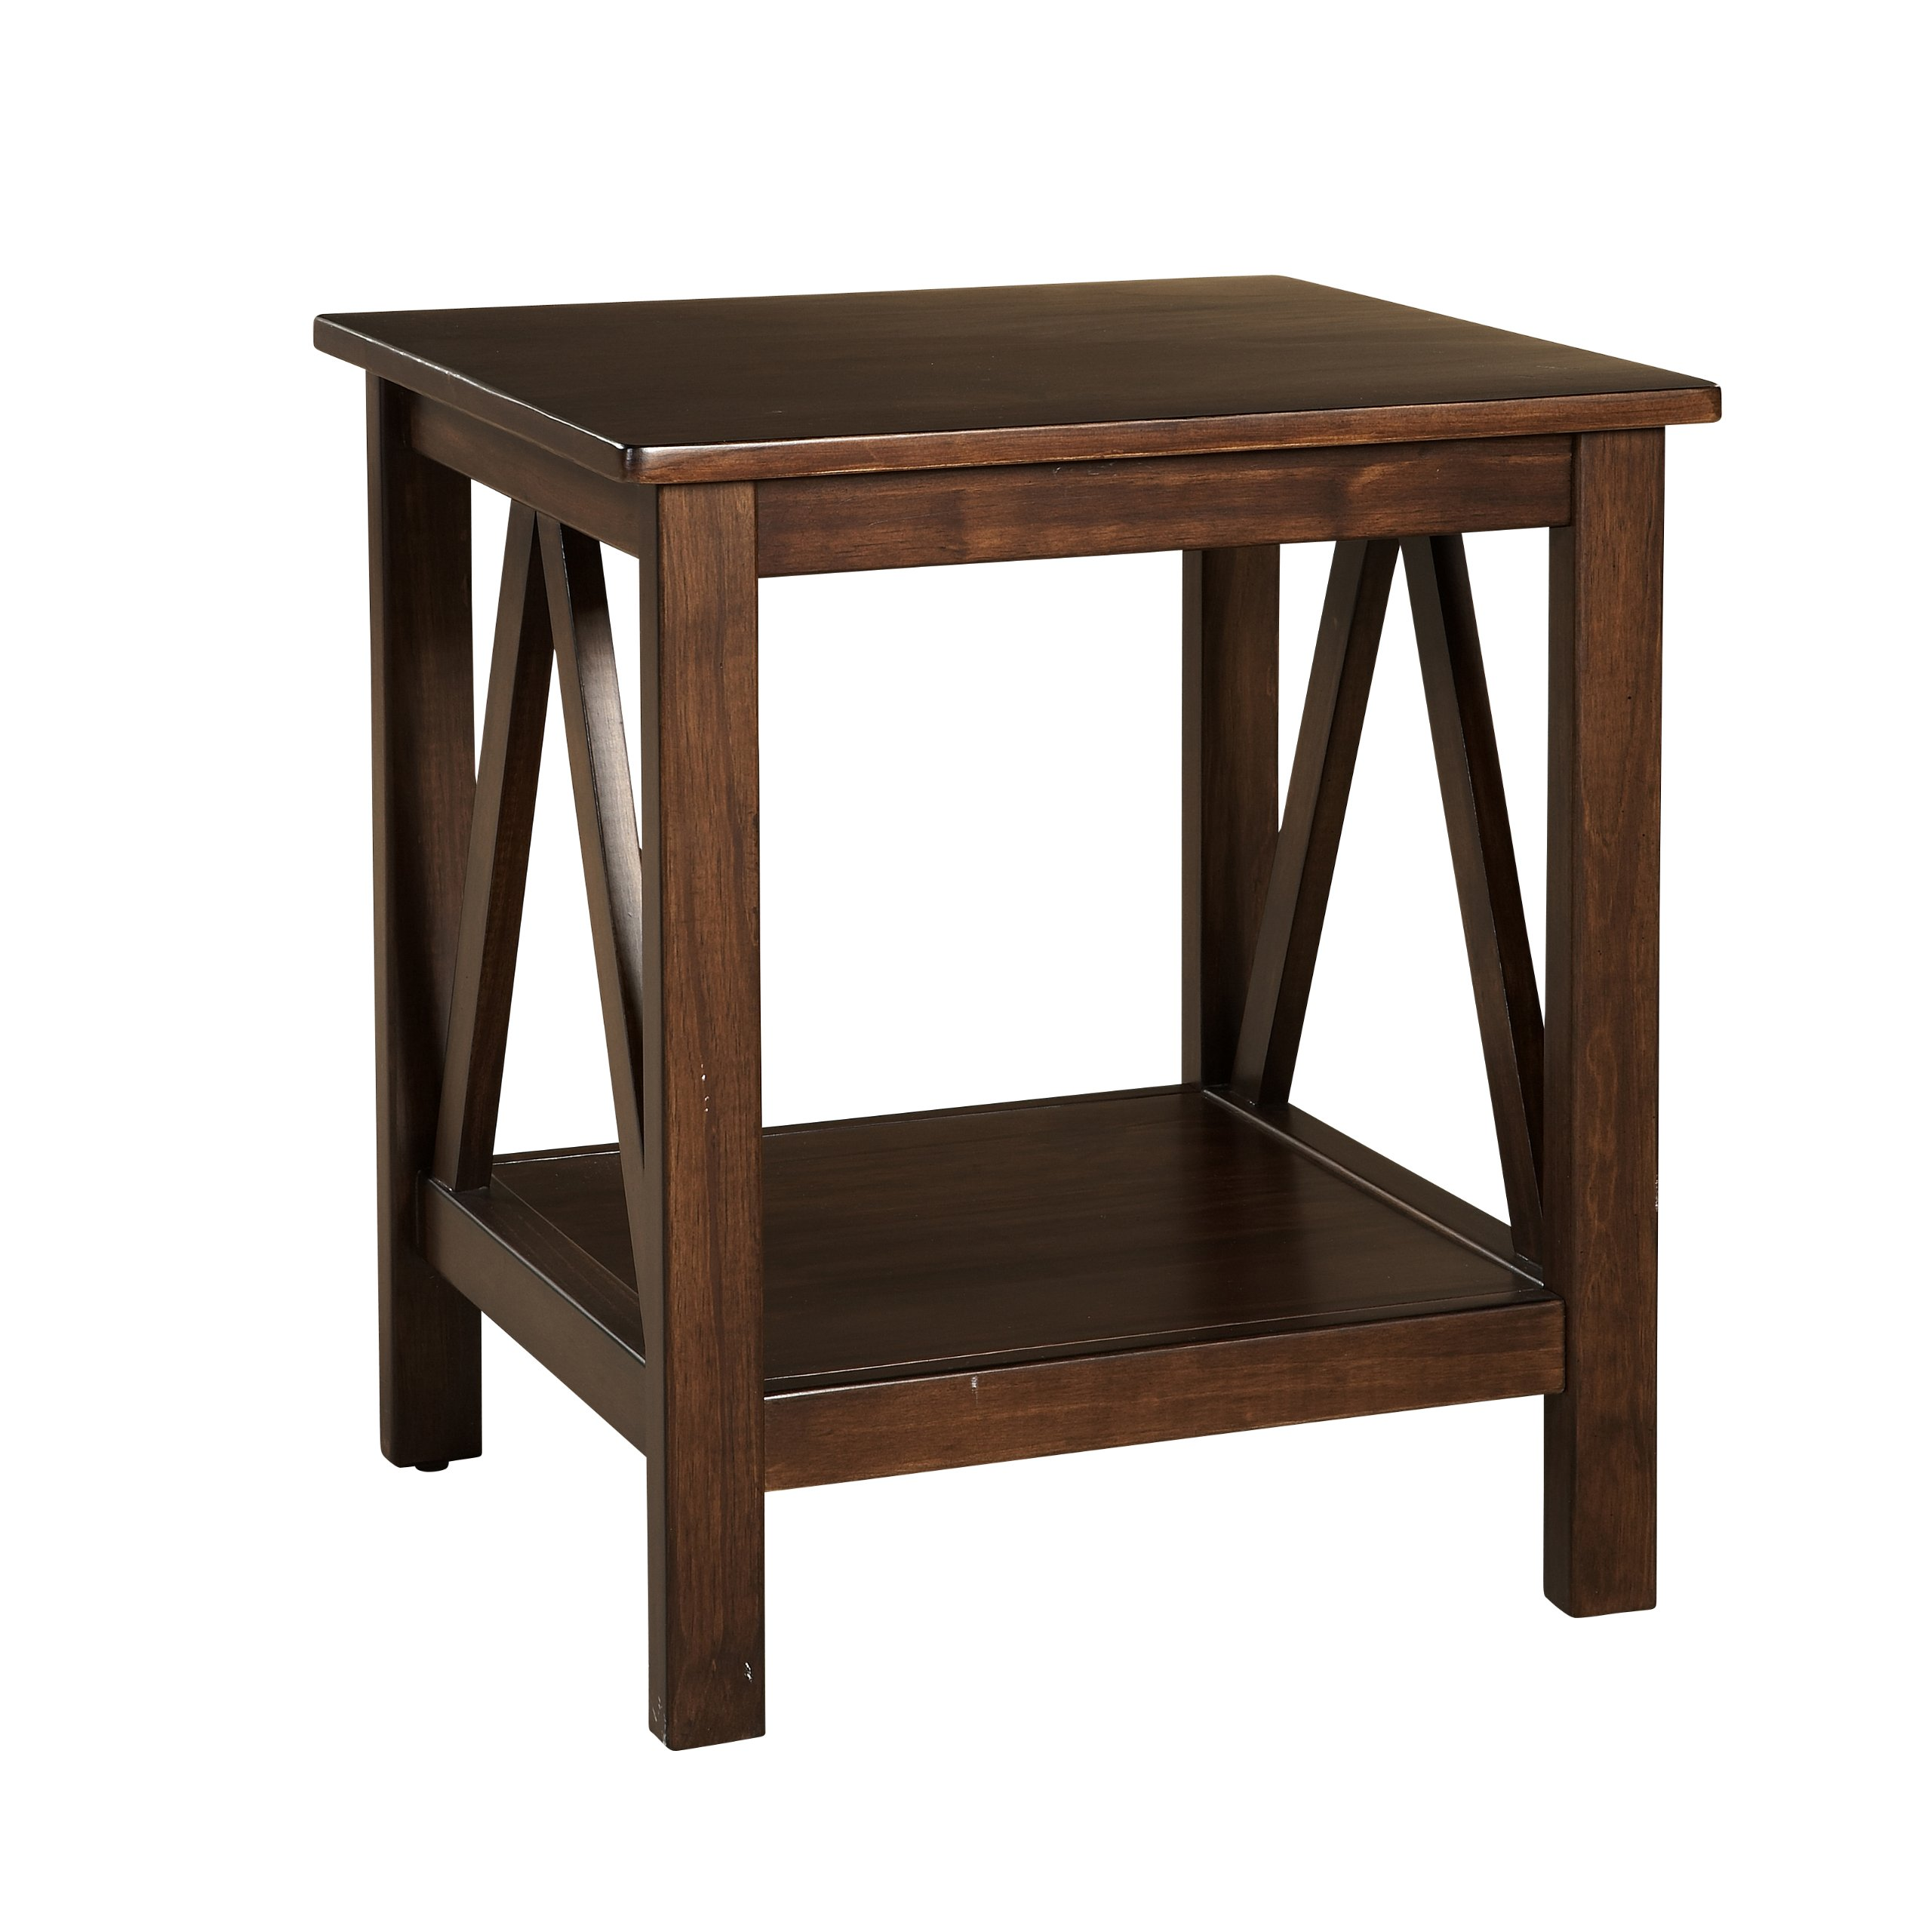 Linon Home Dcor Linon Home Decor Titian End Table, 20''w x 17.72''d x 22.01''h, Antique Tobacco by Linon